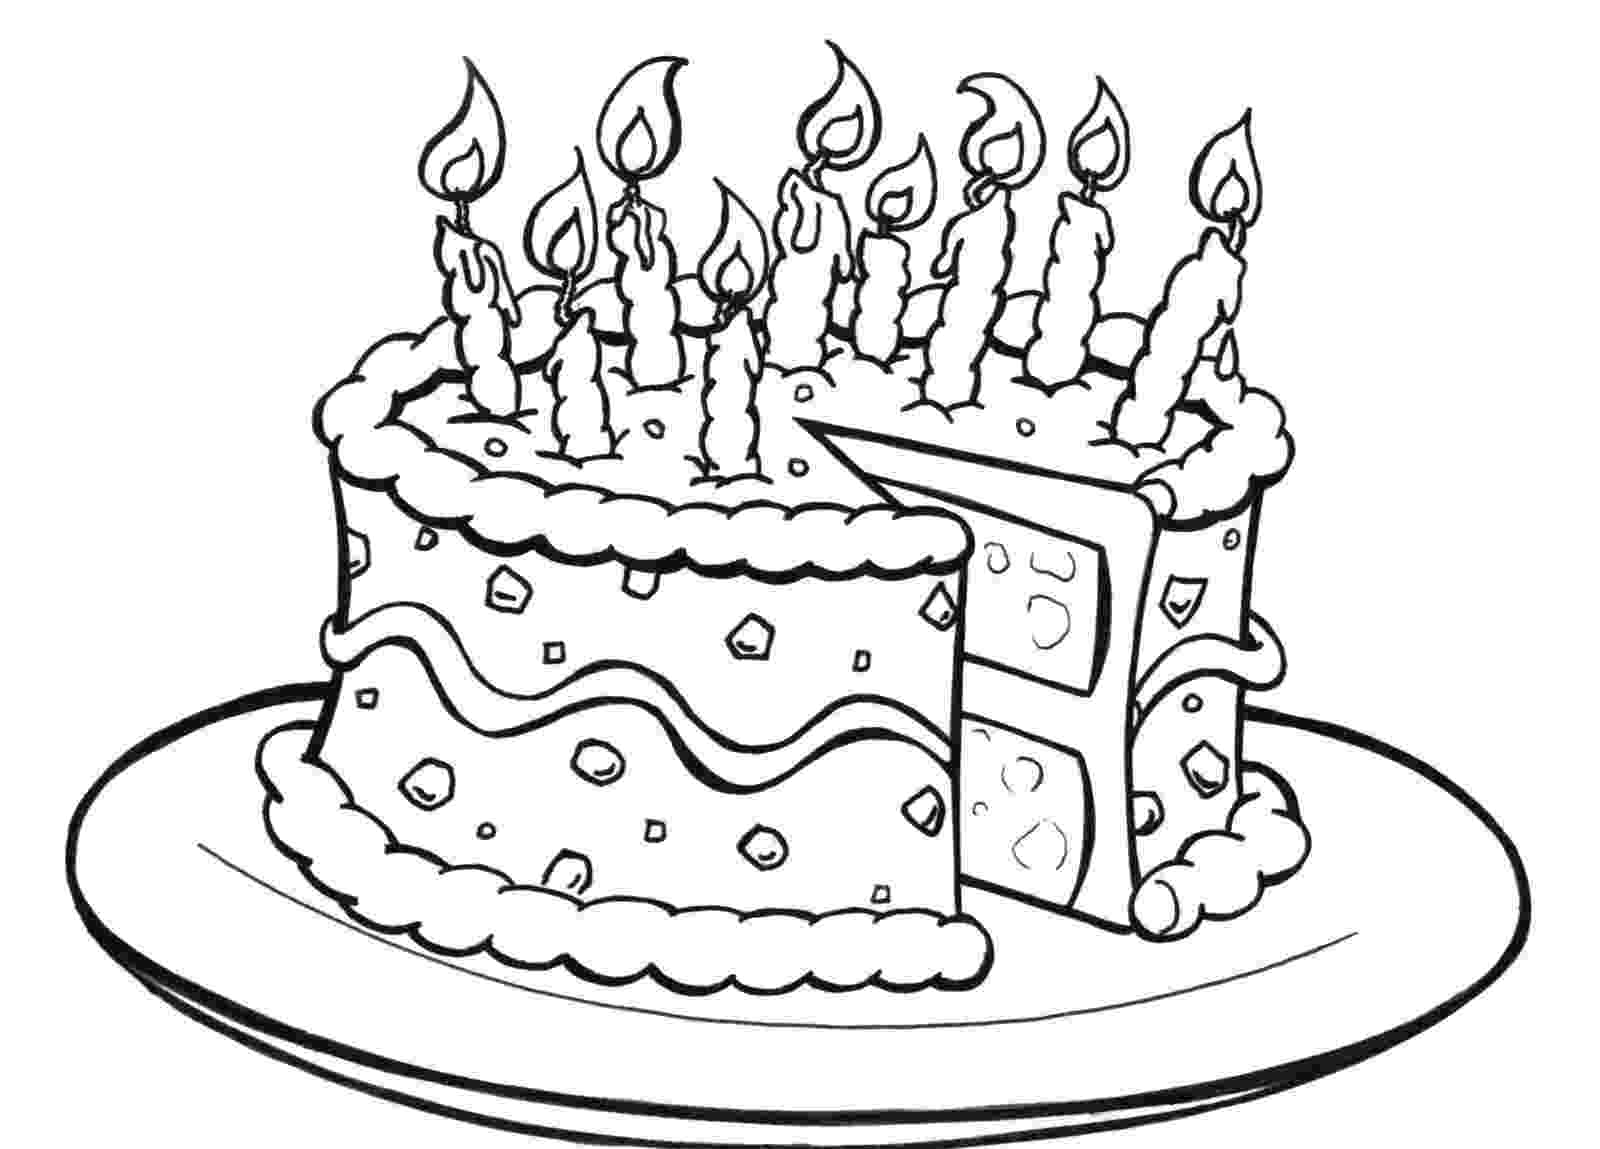 coloring page of a birthday cake free printable birthday cake coloring pages for kids page cake a coloring birthday of